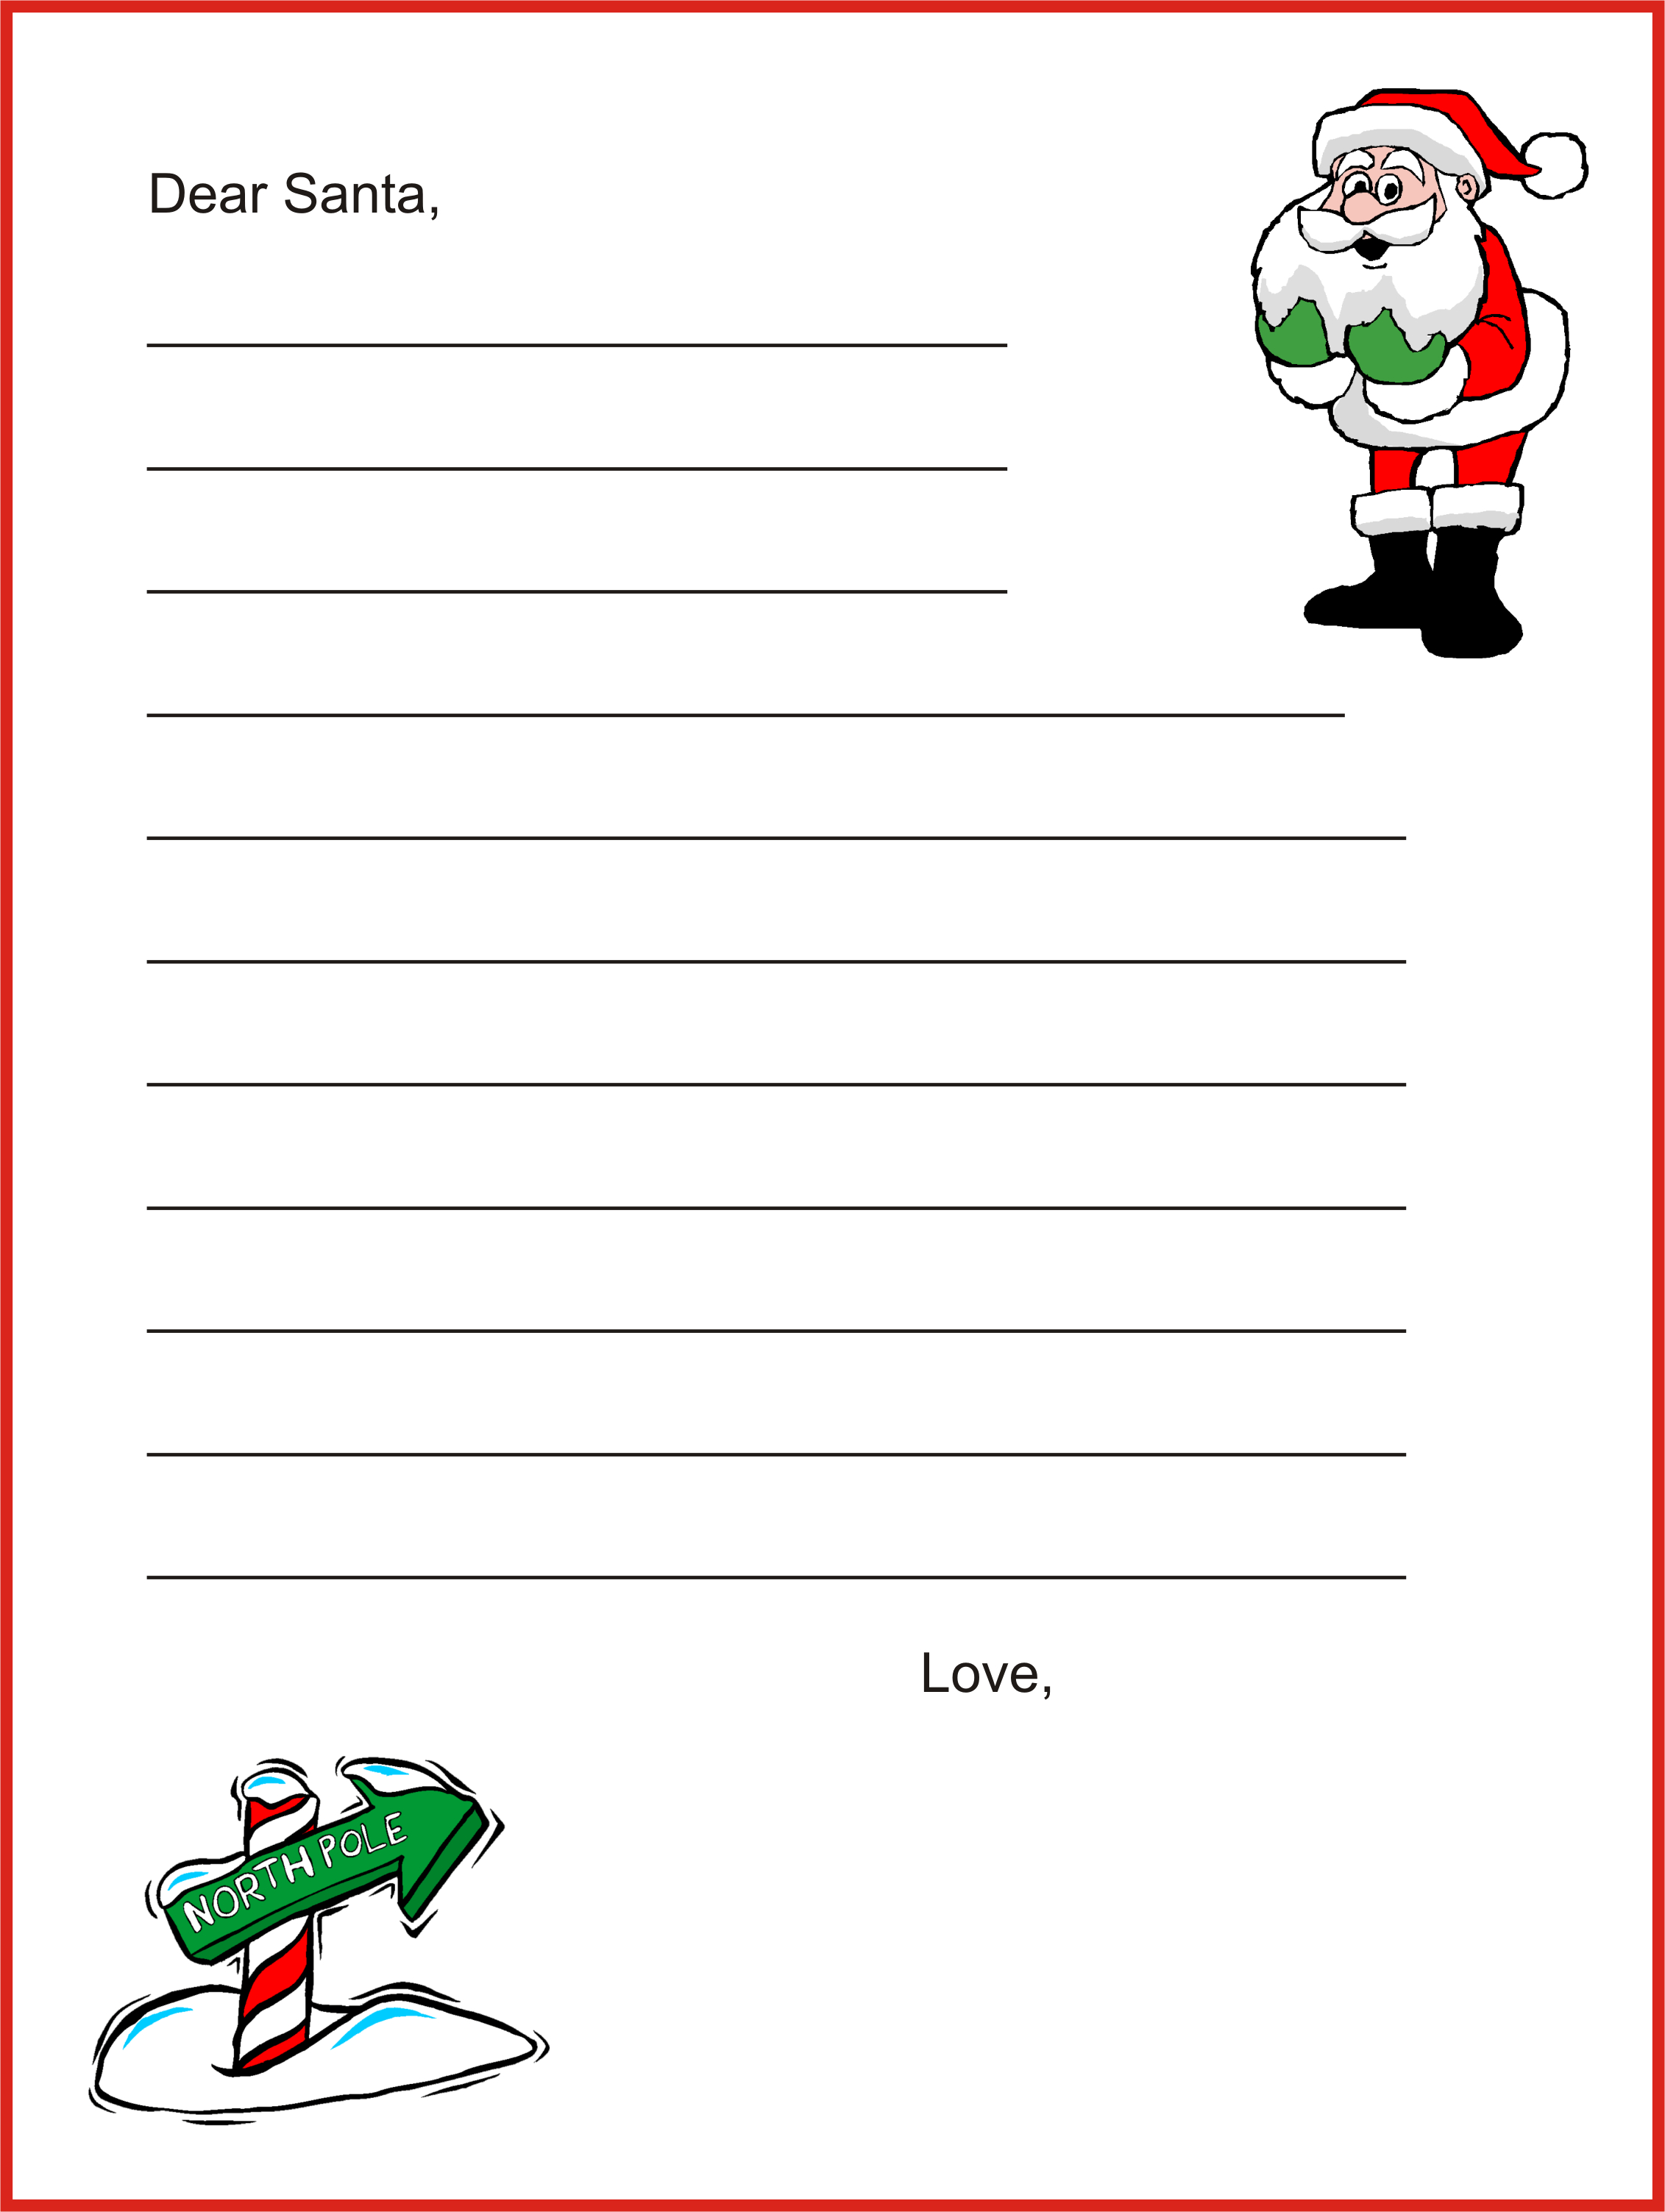 Dear Santa Letter Template Christmas Letter Tips